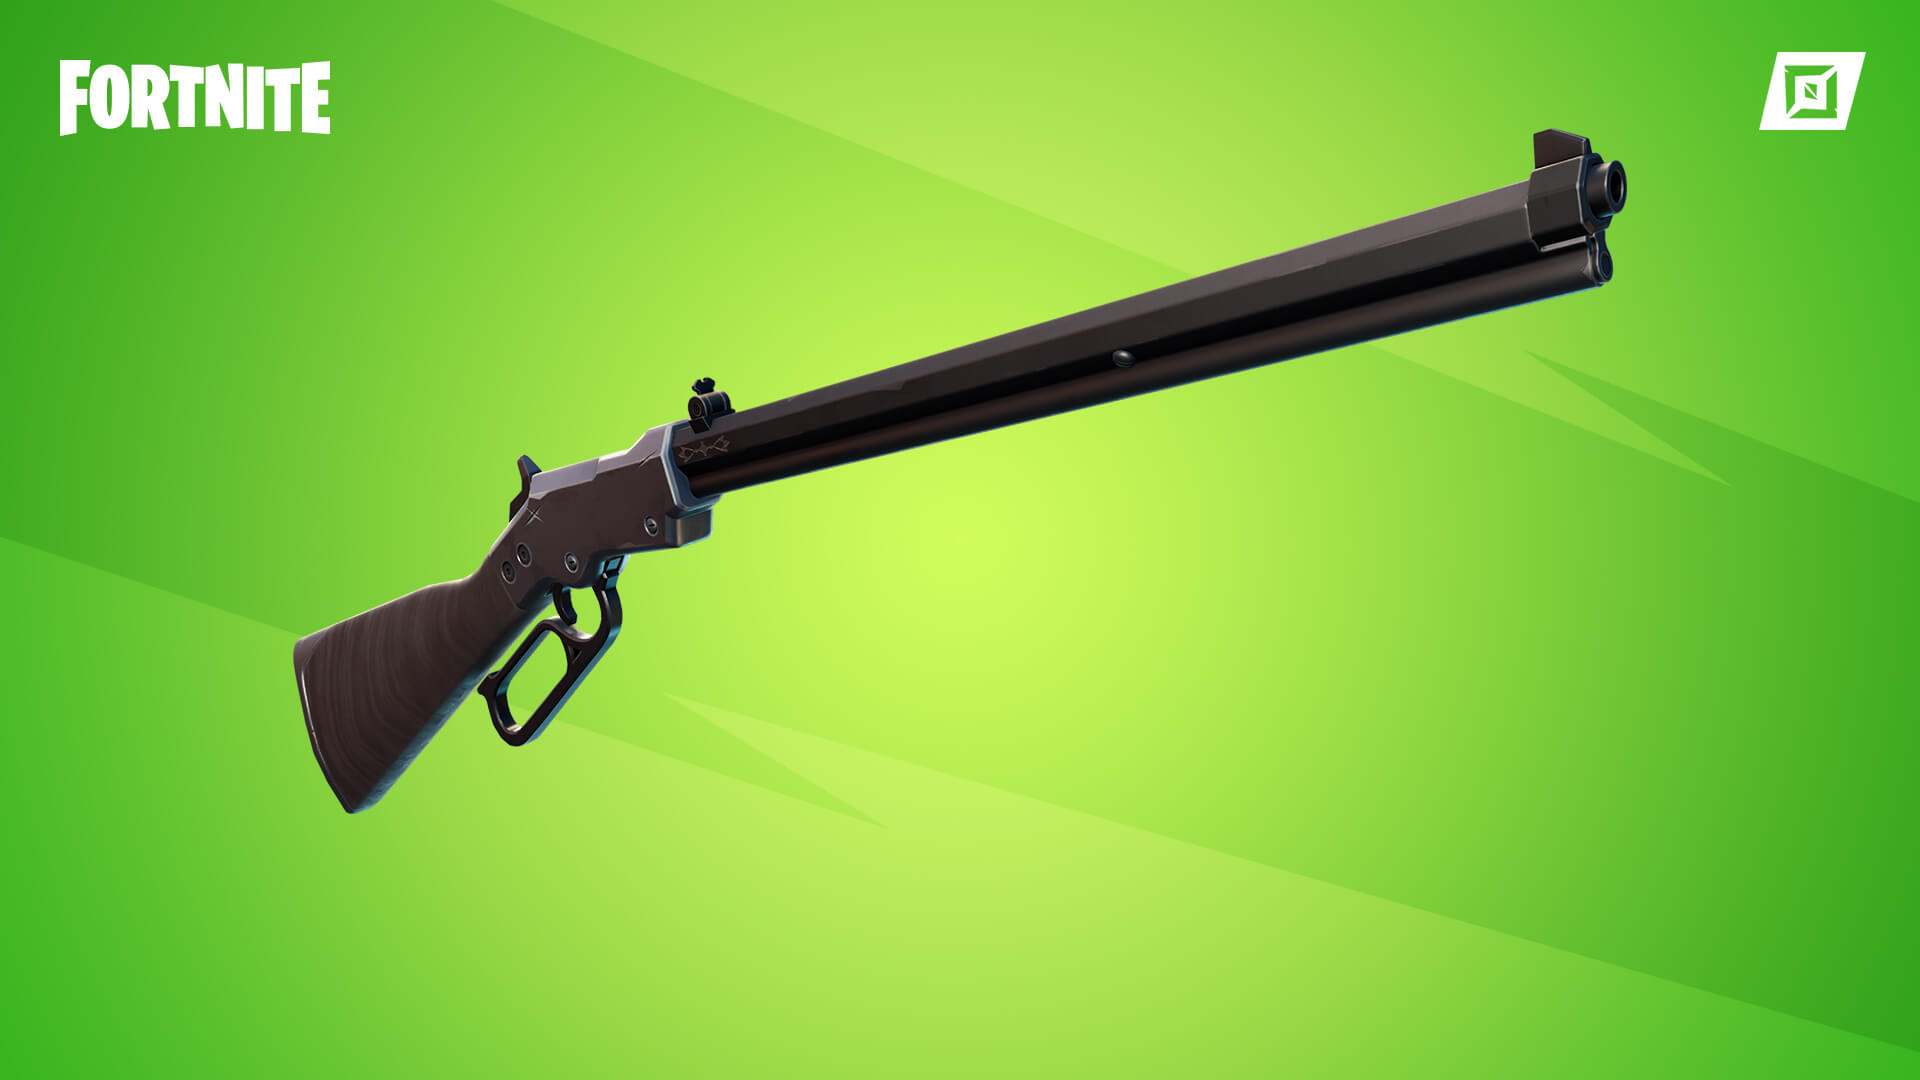 Fortnite Rifle Repetidor do Cowboy